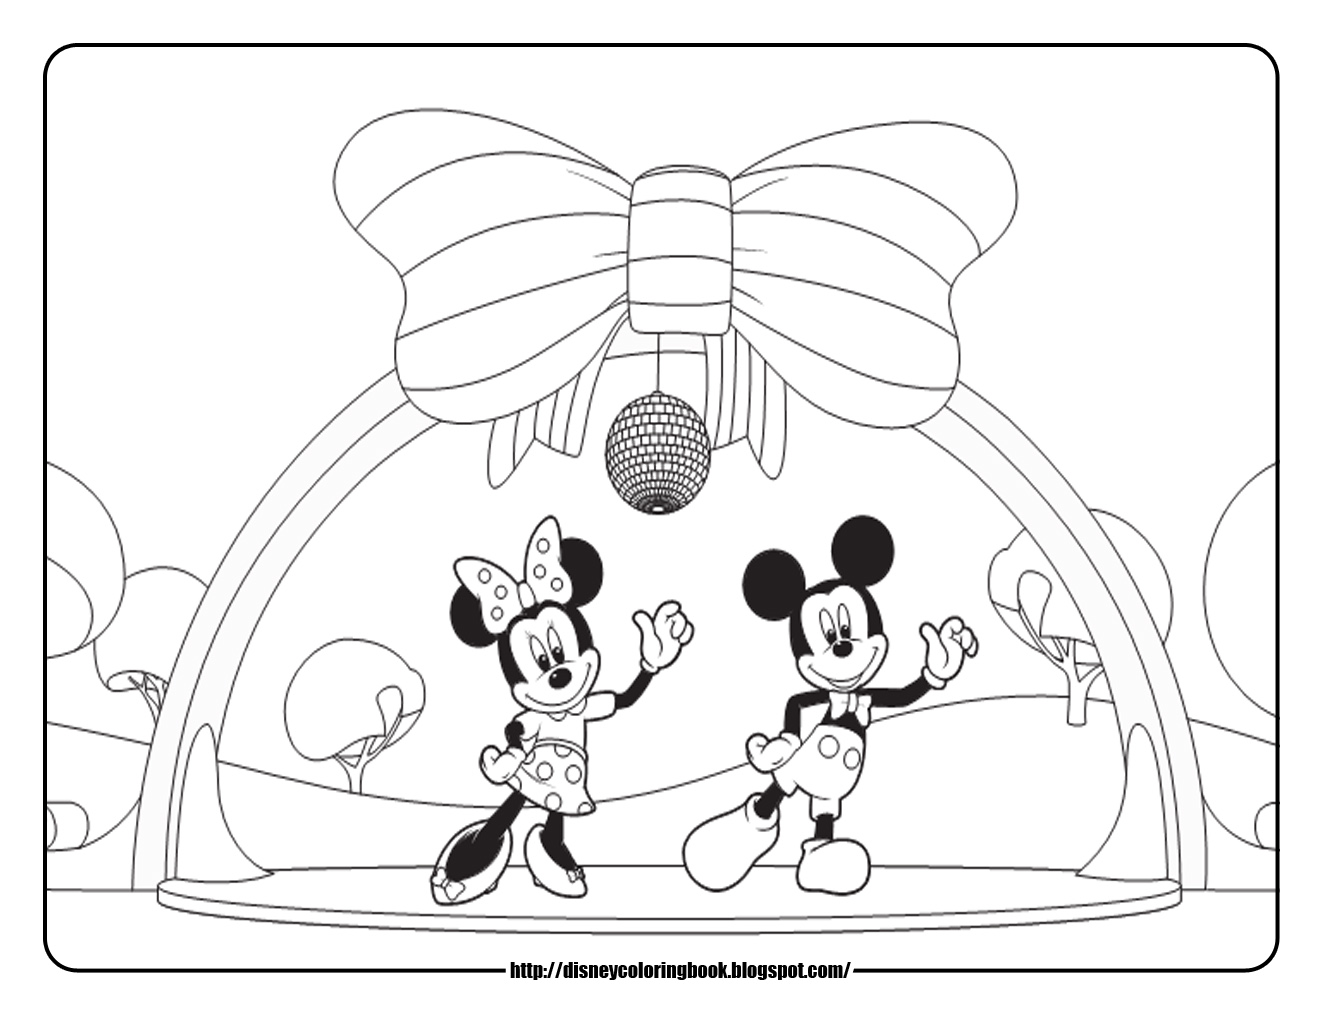 Disney Coloring Pages And Sheets For Kids